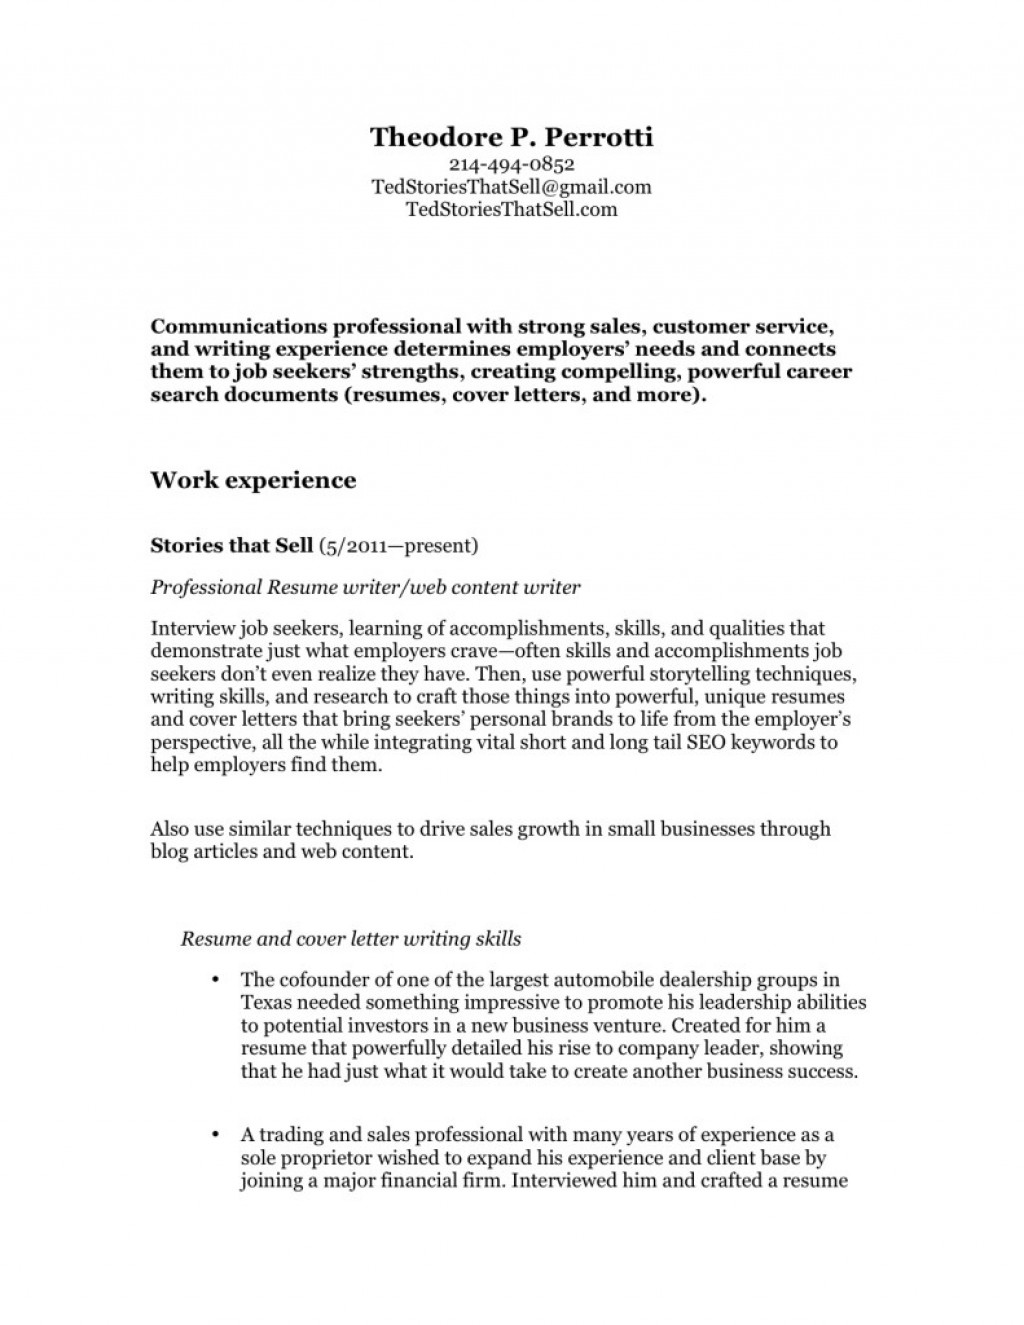 024 Essay Example Ted Perrotti Professional Resume Writer Presentation New For Web P 791x1024 Colleges That Don T Require Excellent Essays College Scholarships Do Not Best Don't Nc Admission Large